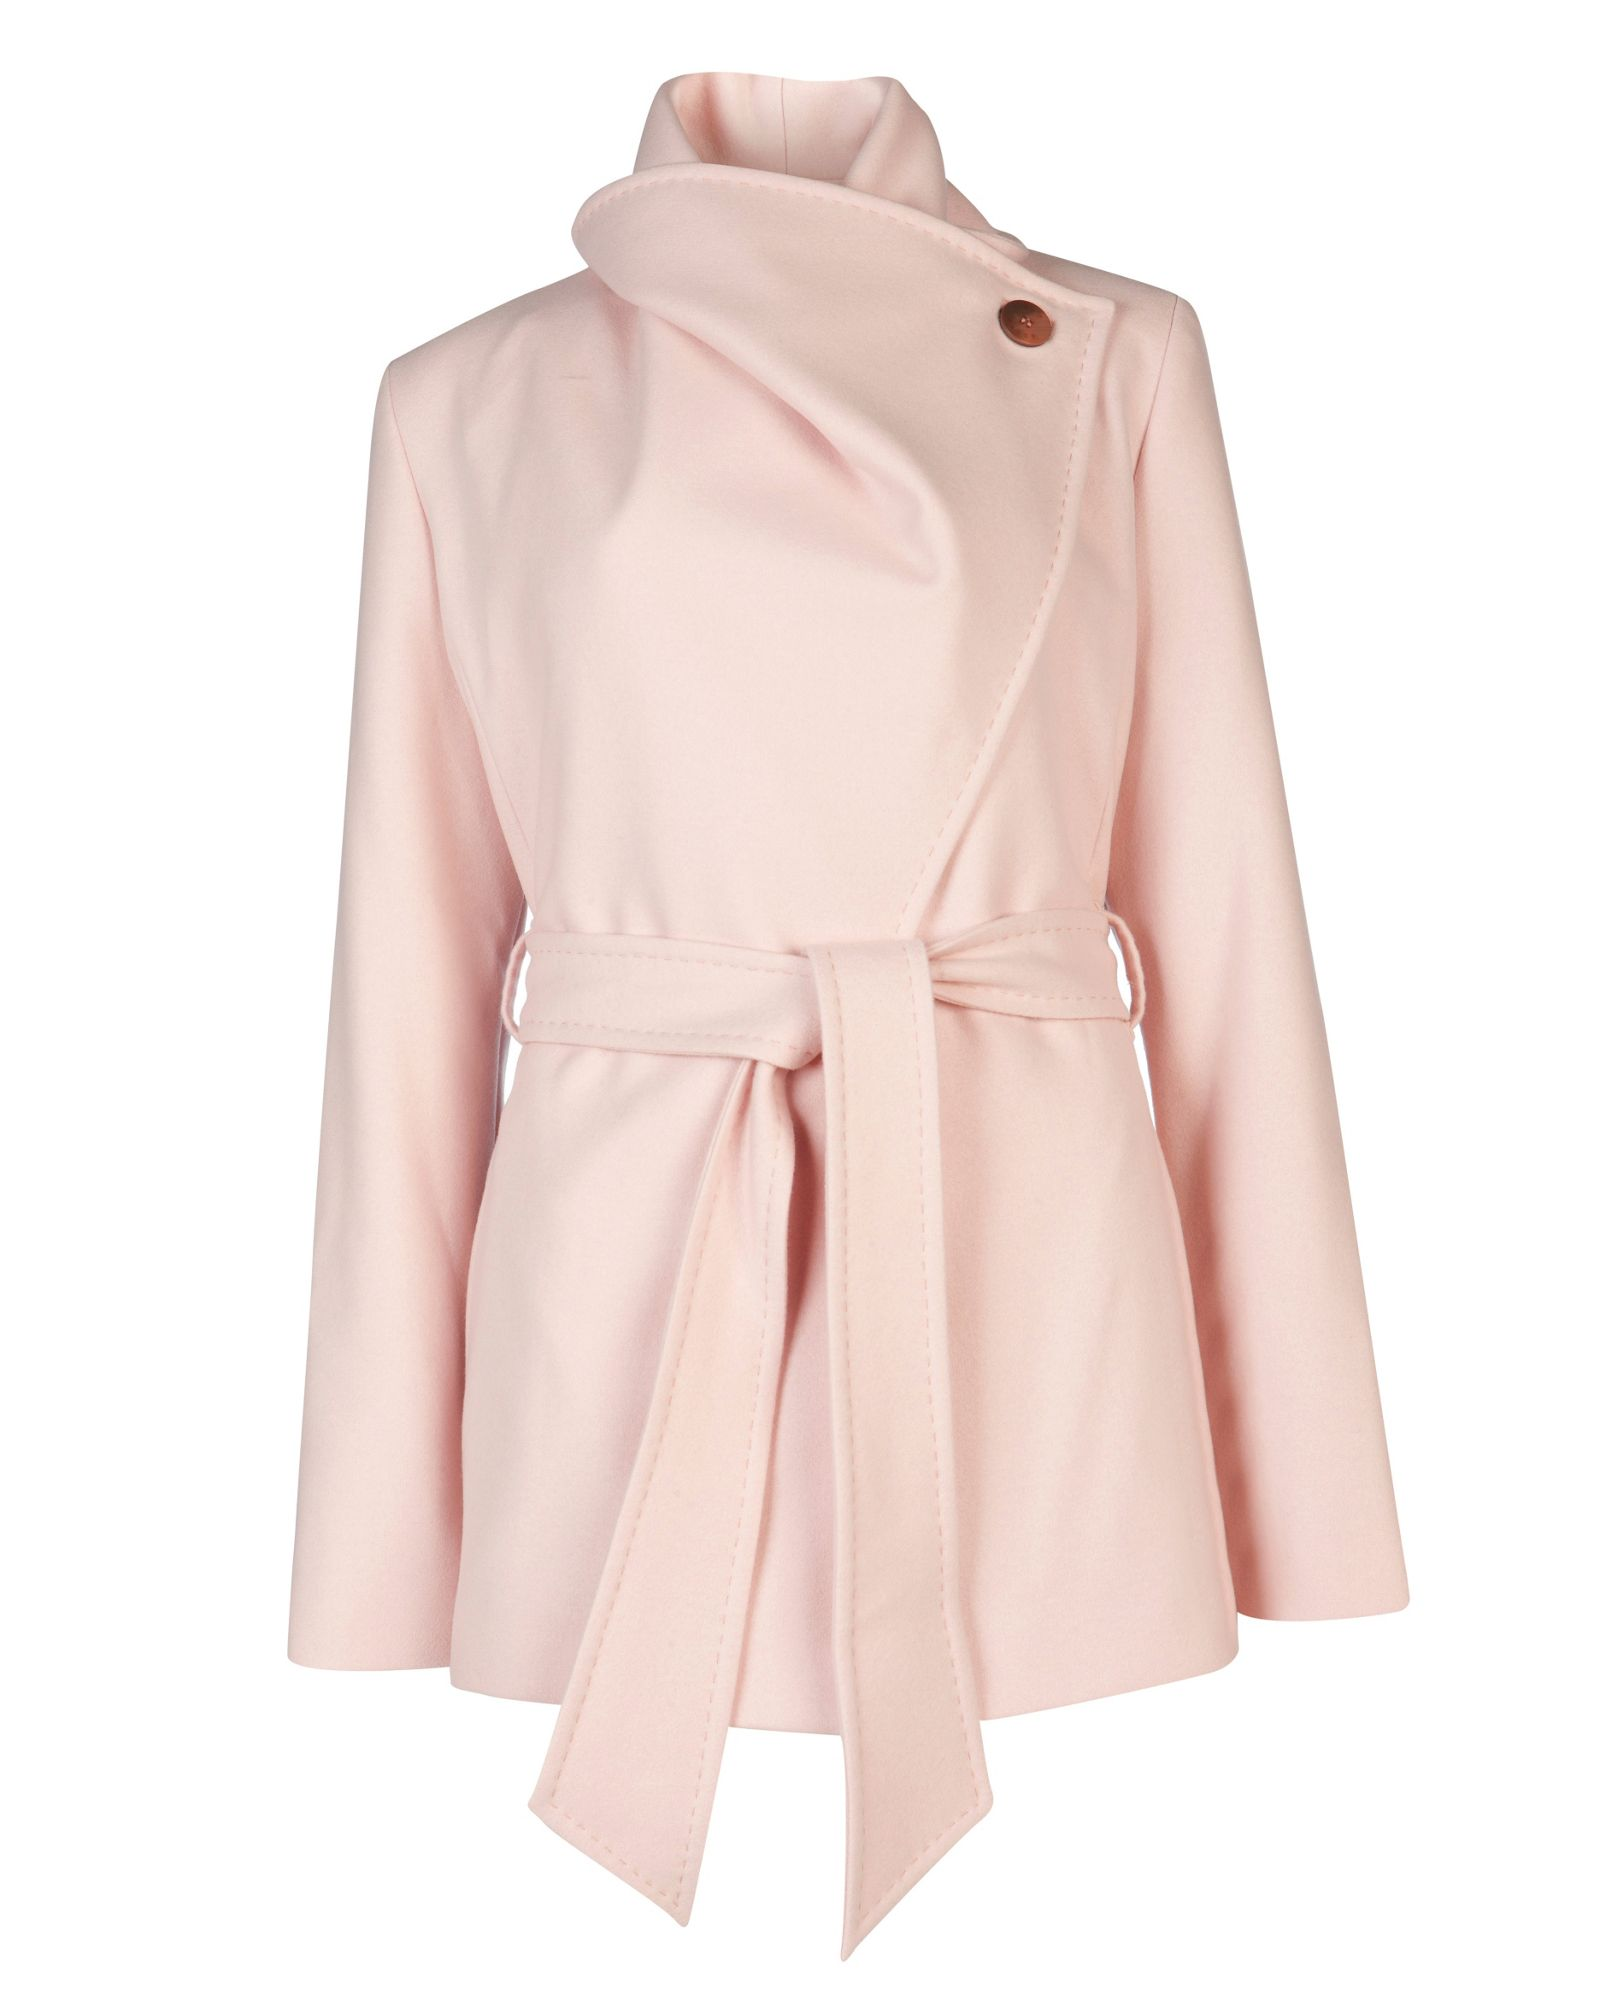 Ted baker Matild Short Wrap Coat in Pink | Lyst